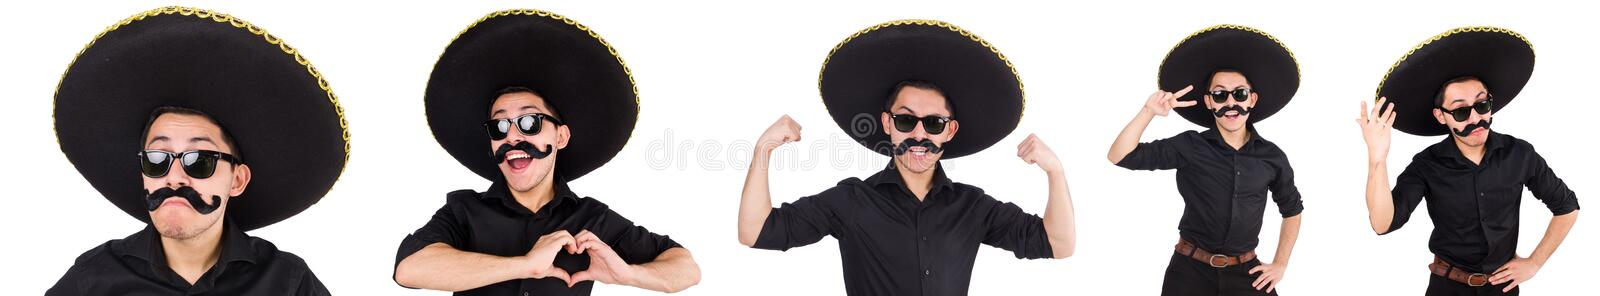 The funny man wearing mexican sombrero hat isolated on white stock photography